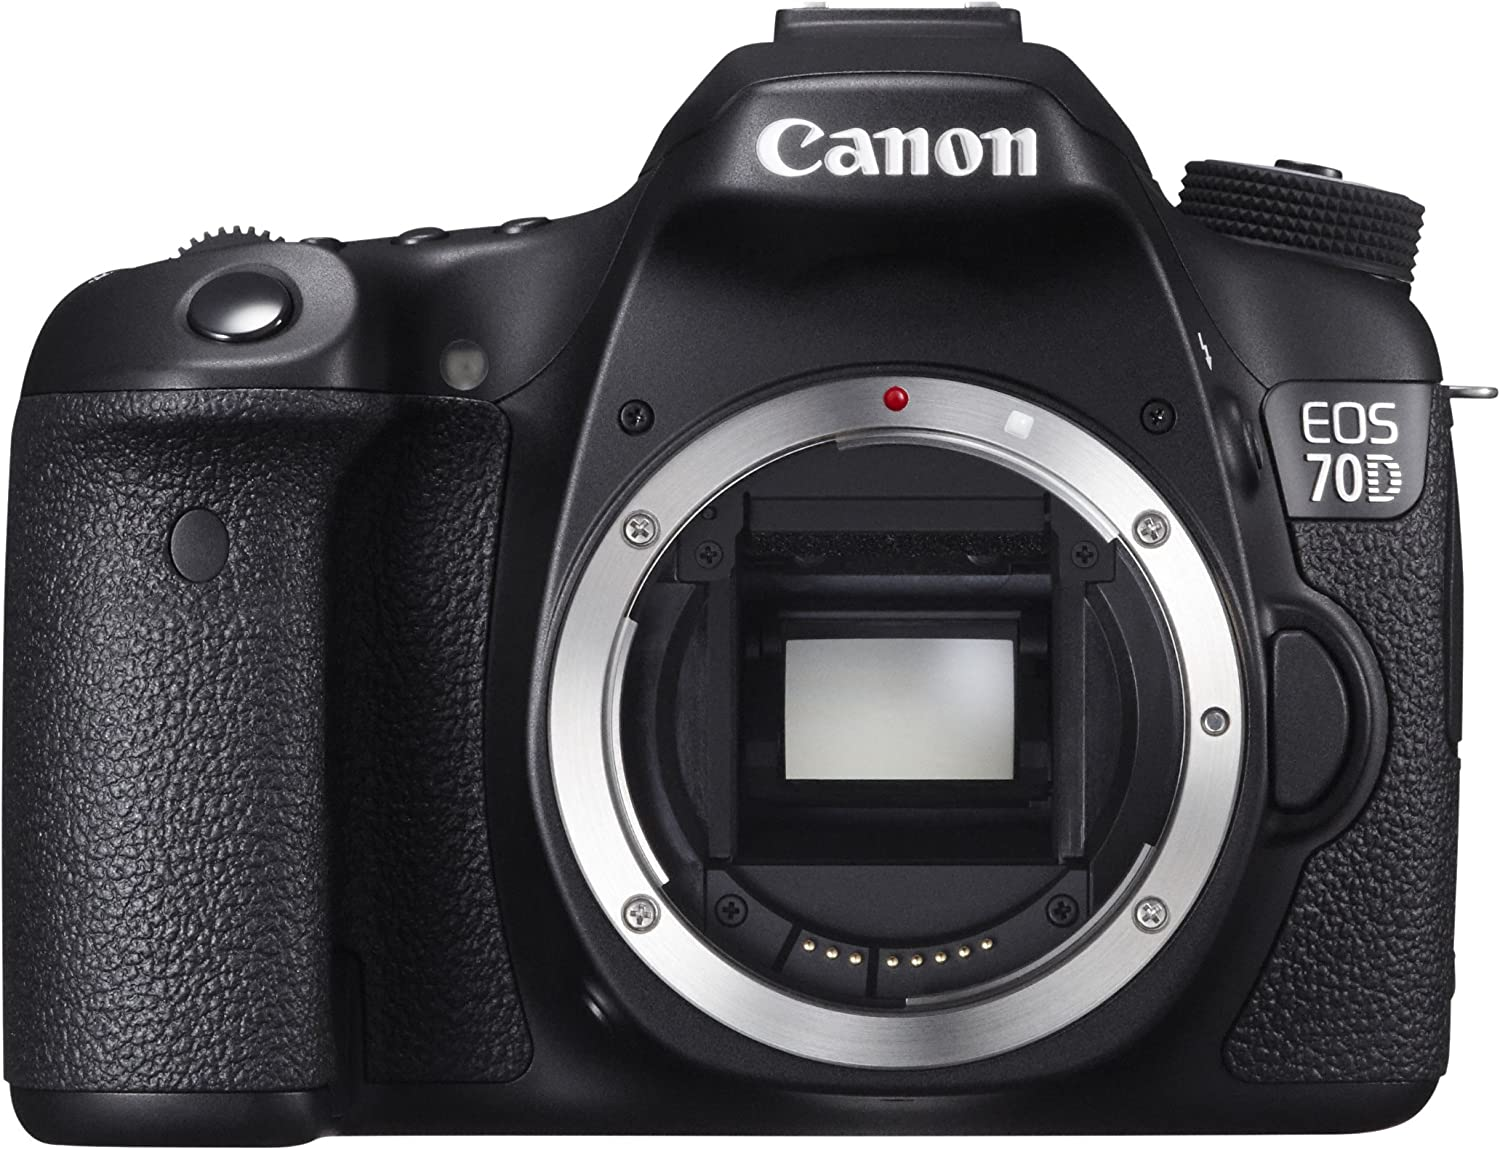 Canon 70D | Best Makeup Camera for Makeup Artists & Influencers